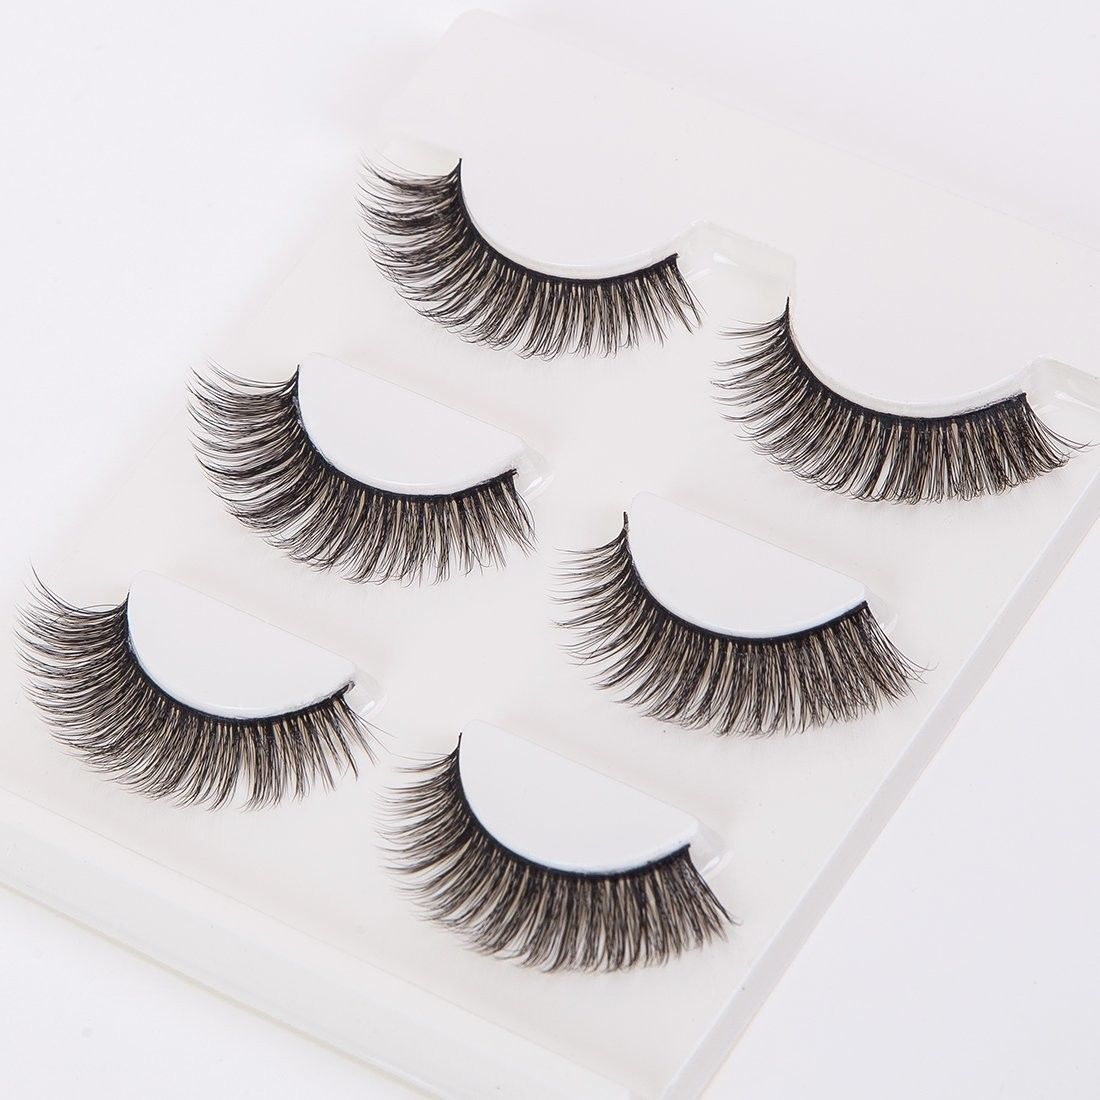 Primary image for 3Pair Long False Eyelashes 3D Thick Natural Fake Eyelash Voluminous Makeup for W